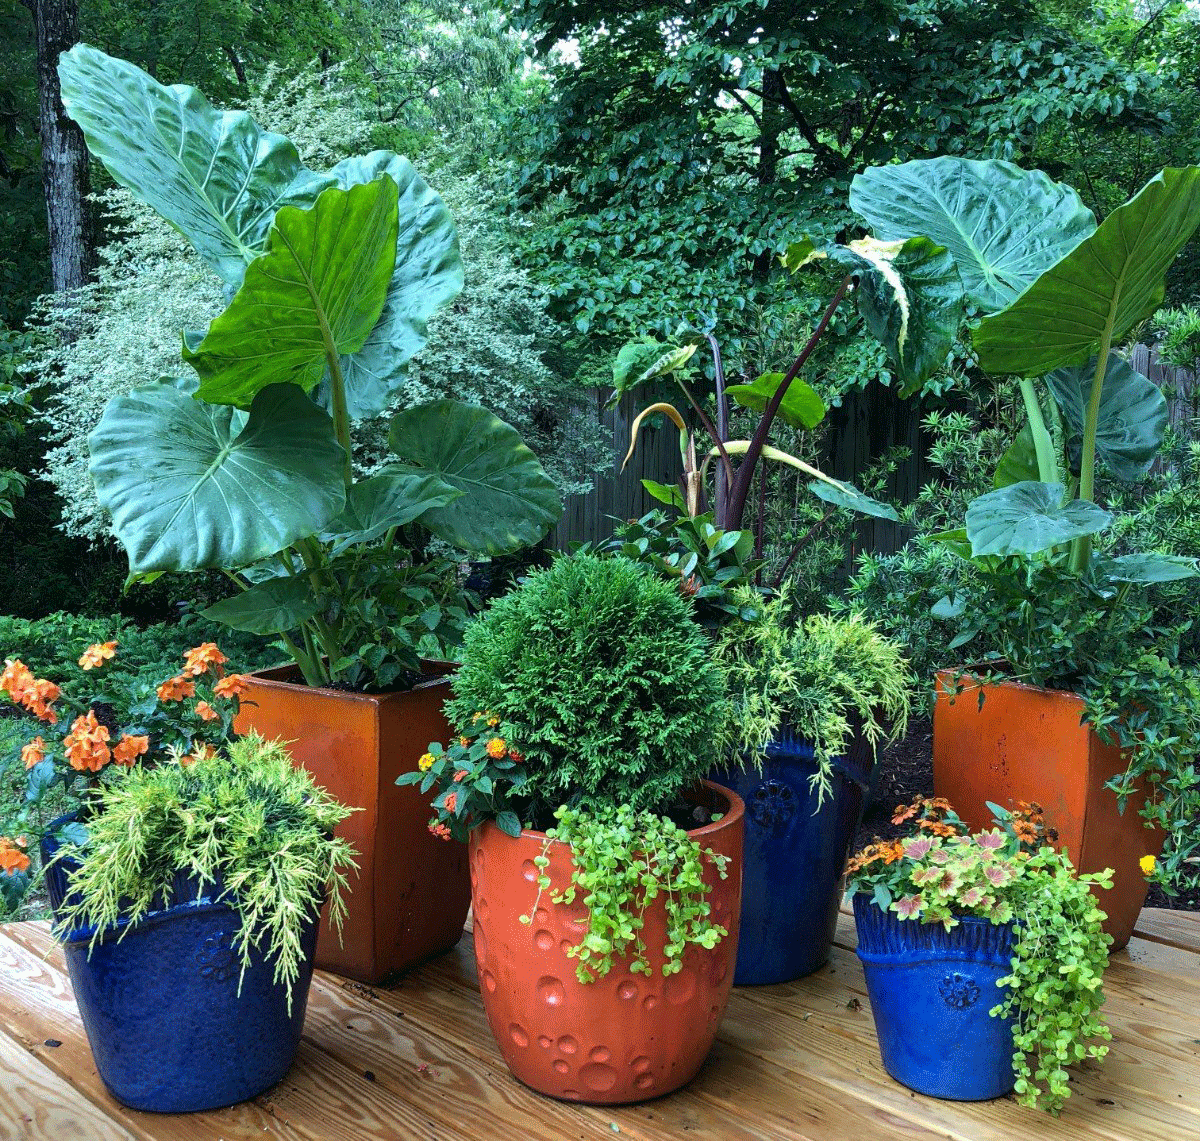 Multiple container gardens with large plants and flowers